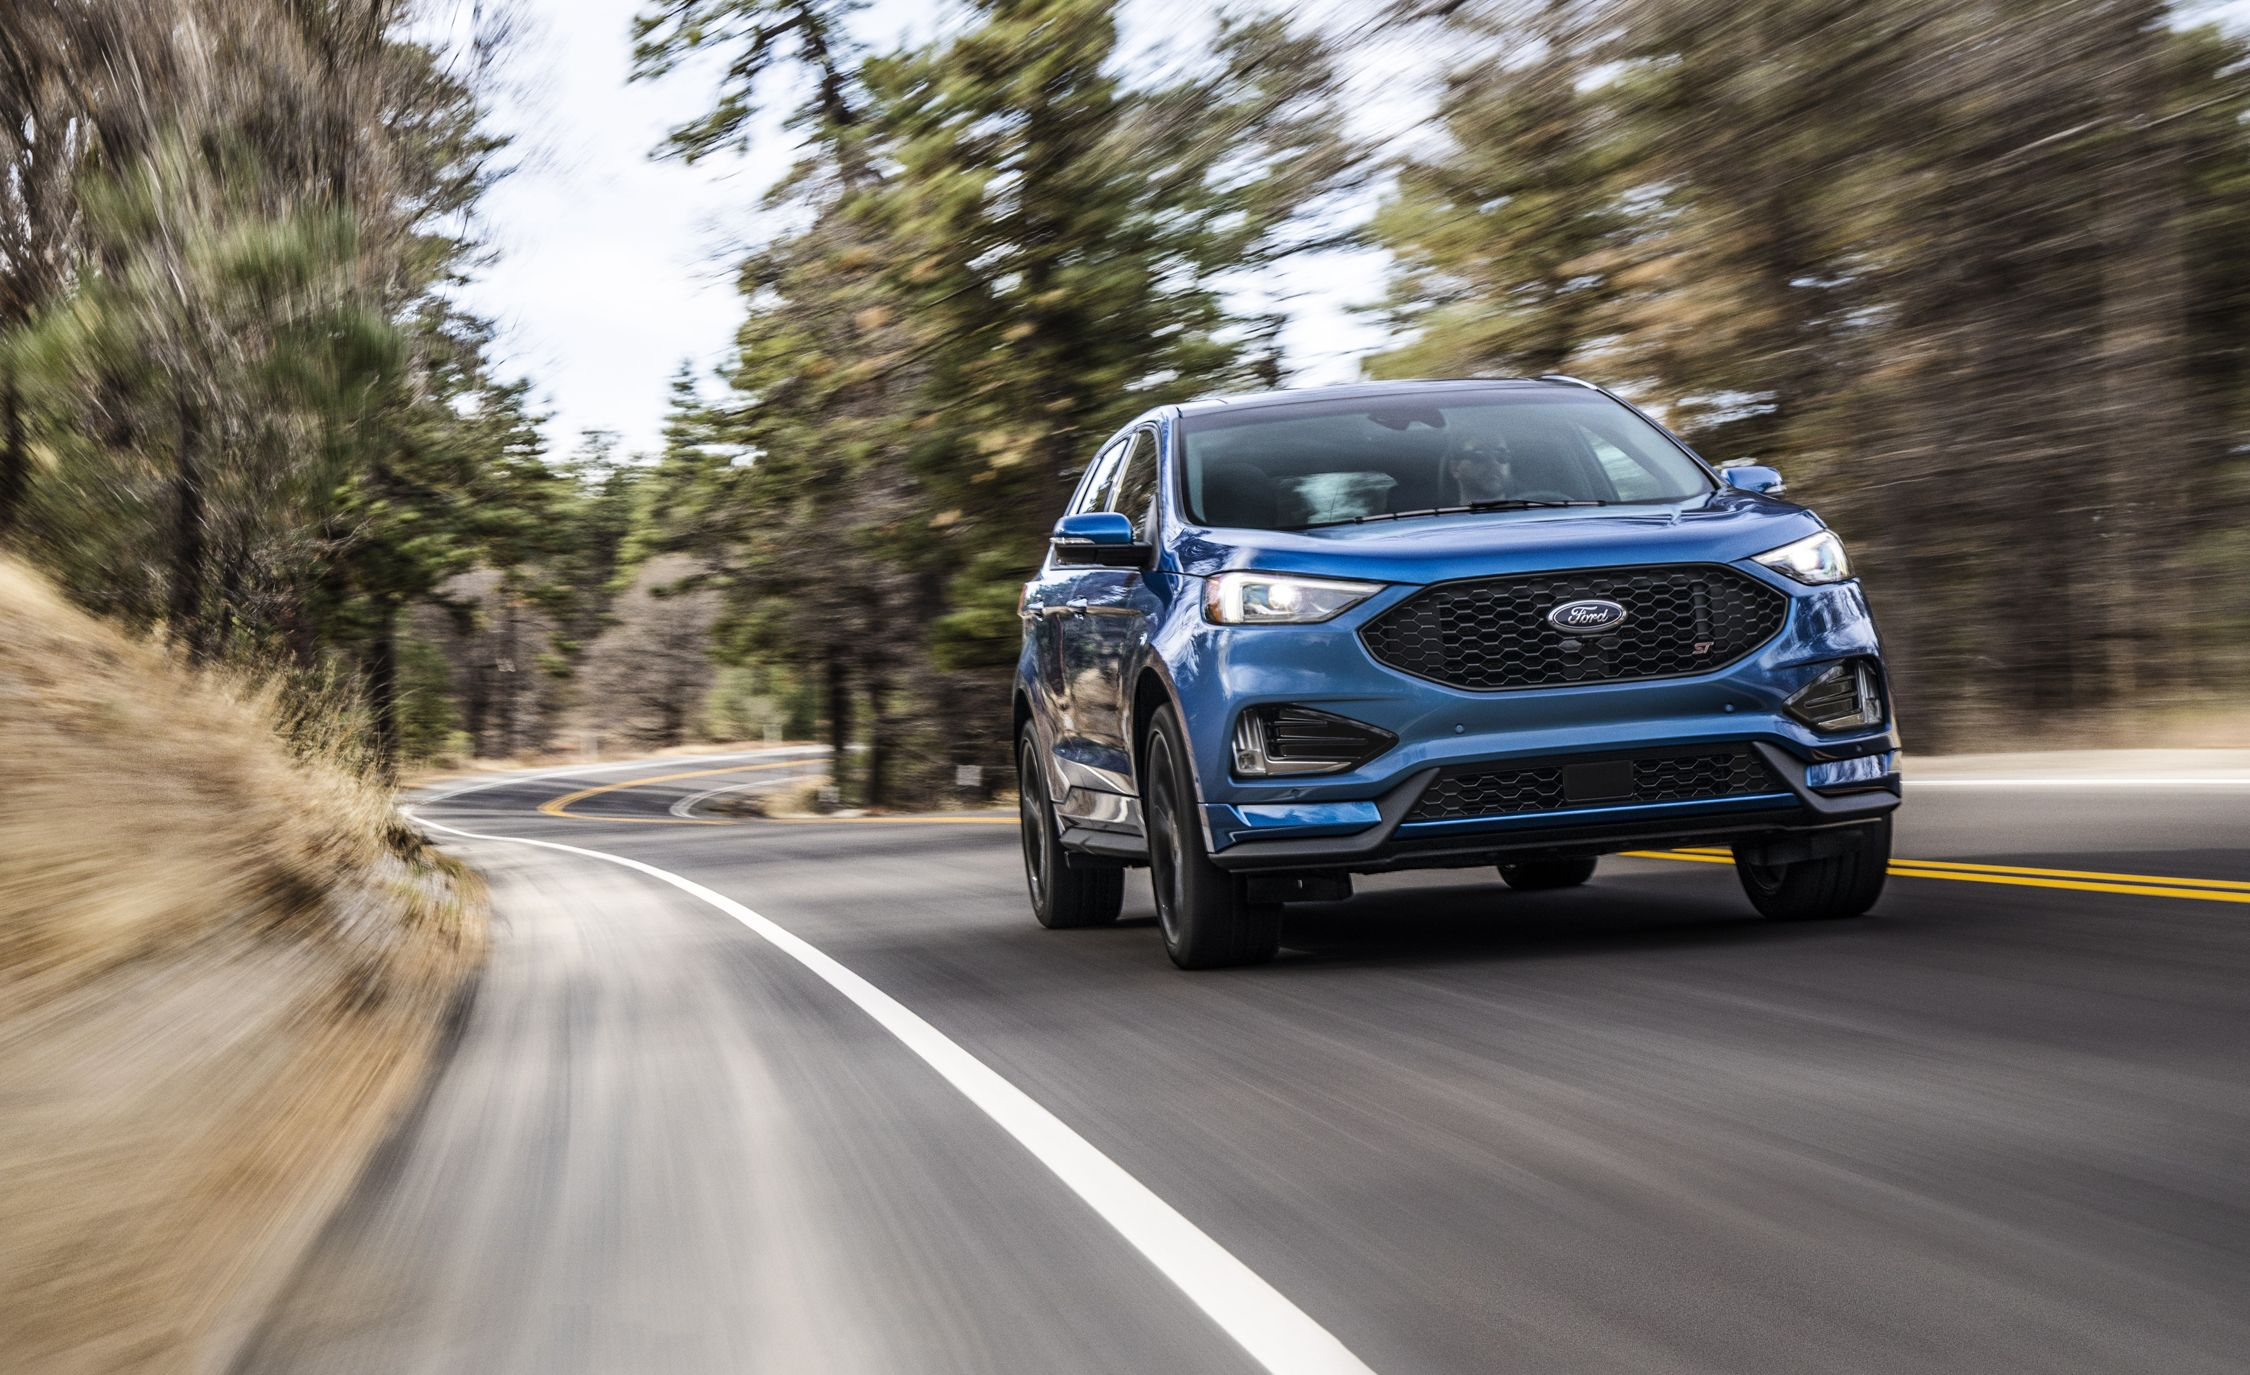 2019 ford edge st photos and full info | news | car and driver